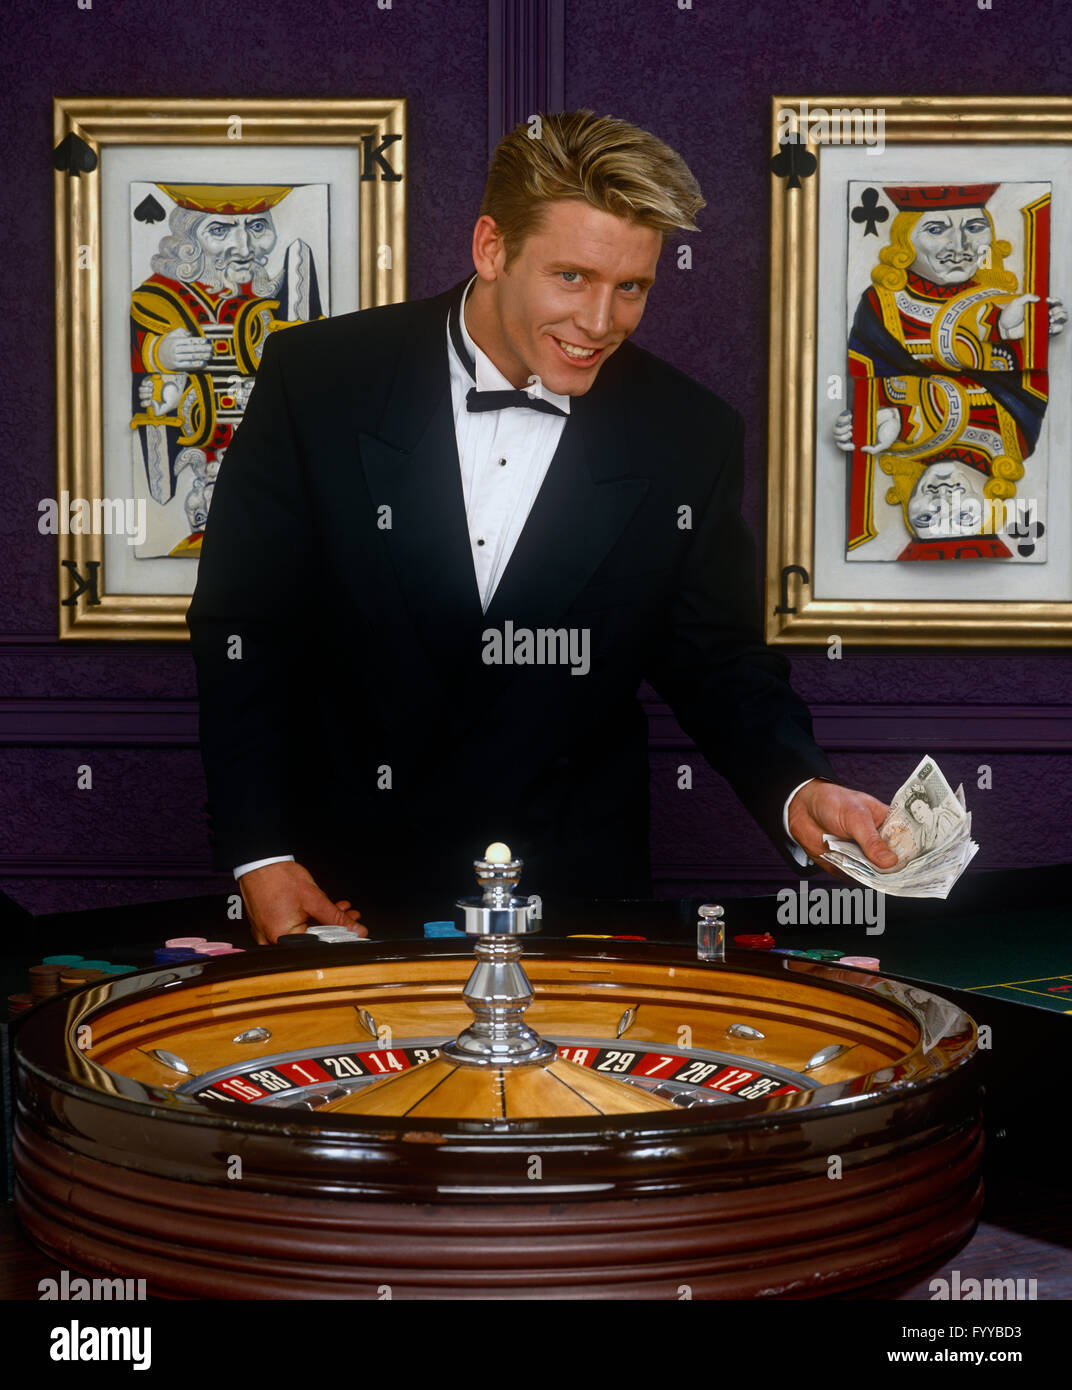 Male dealer at a casino by a roulette wheel, inside. - Stock Image